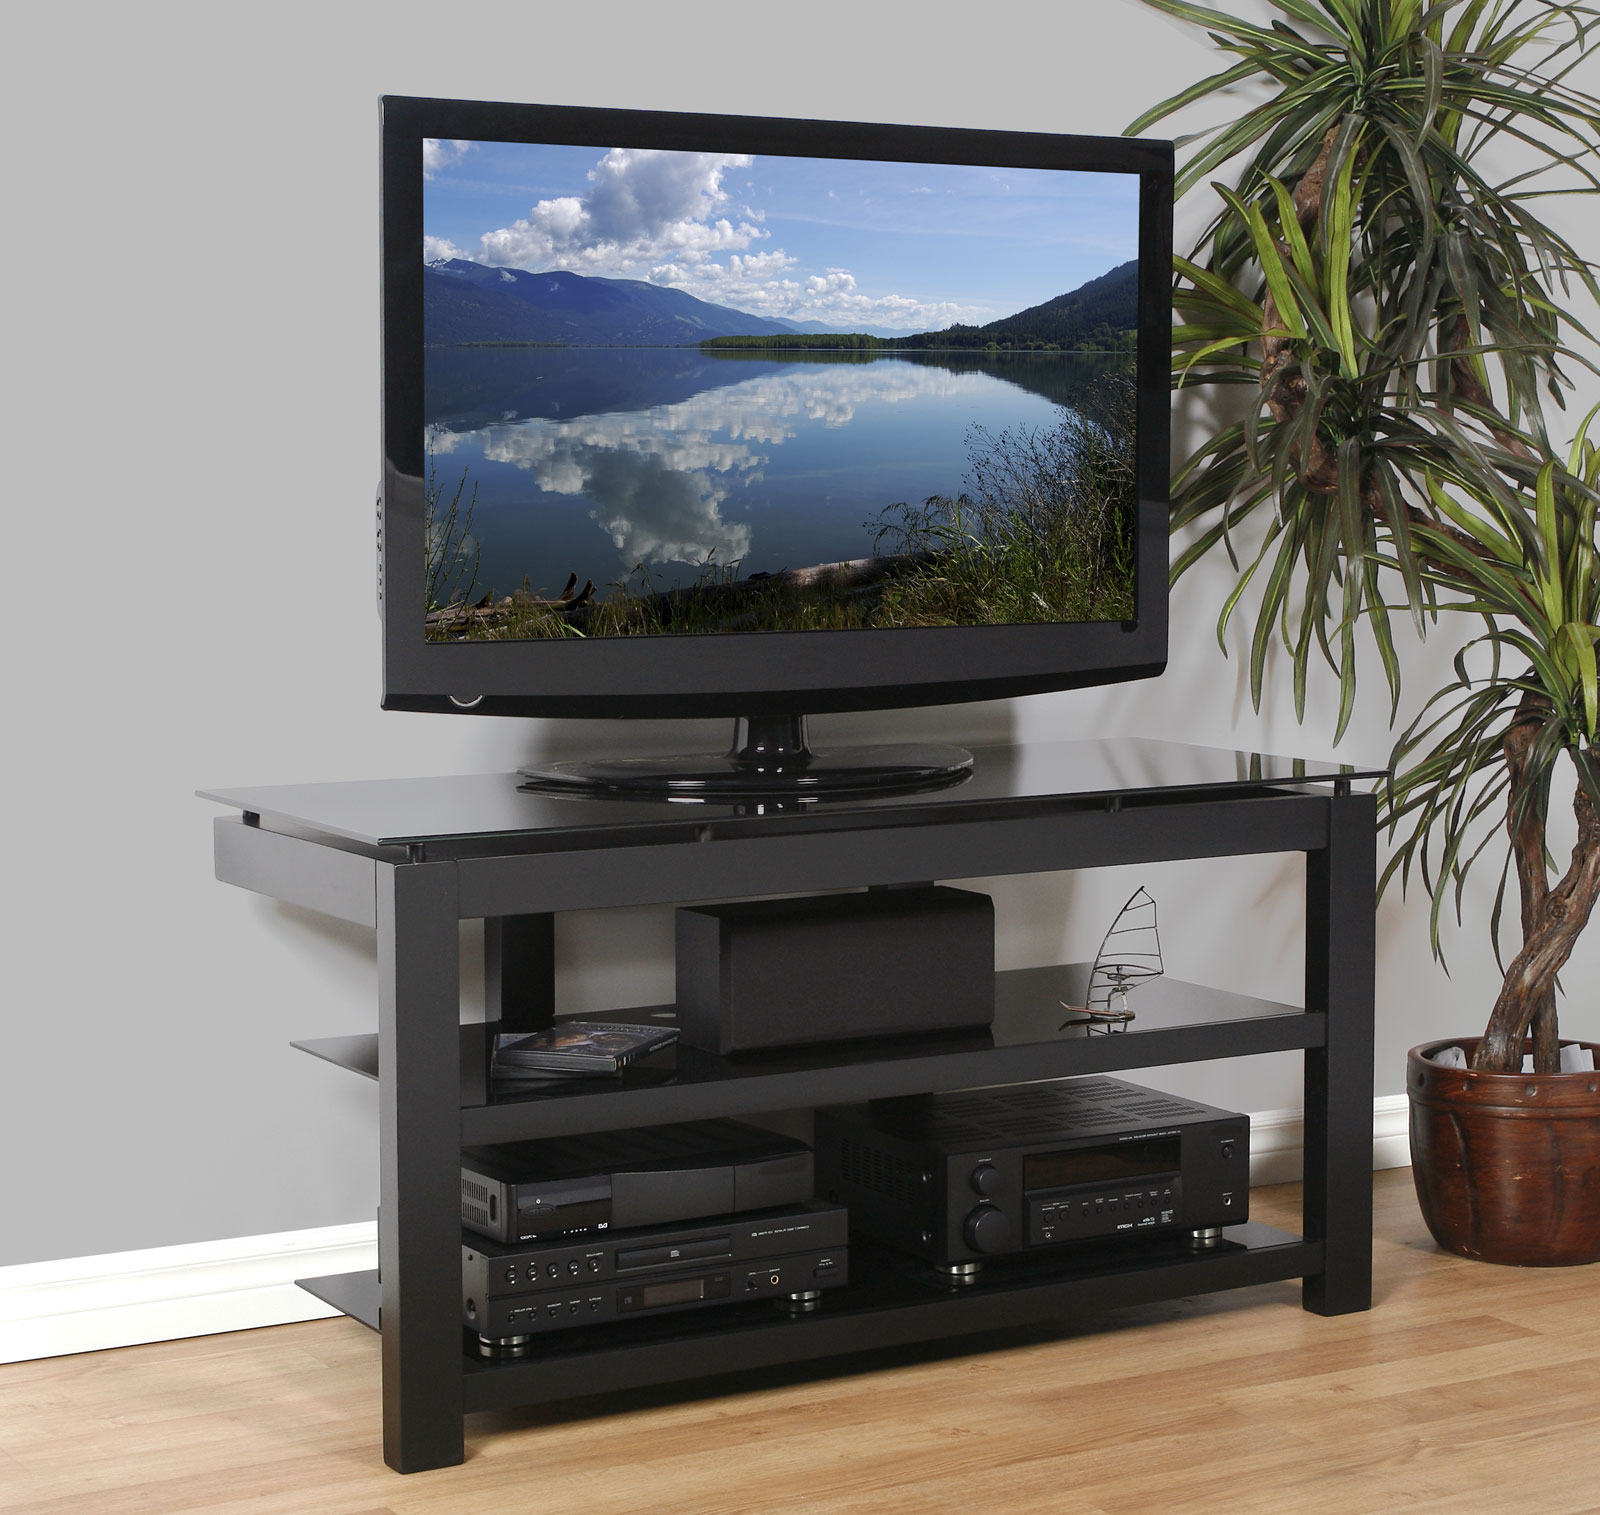 Well Known Floating Glass Tv Stands Pertaining To Glass Shelf Tv Stand 2 With Mount 4 Promounts 3 Floating Black For (View 6 of 20)